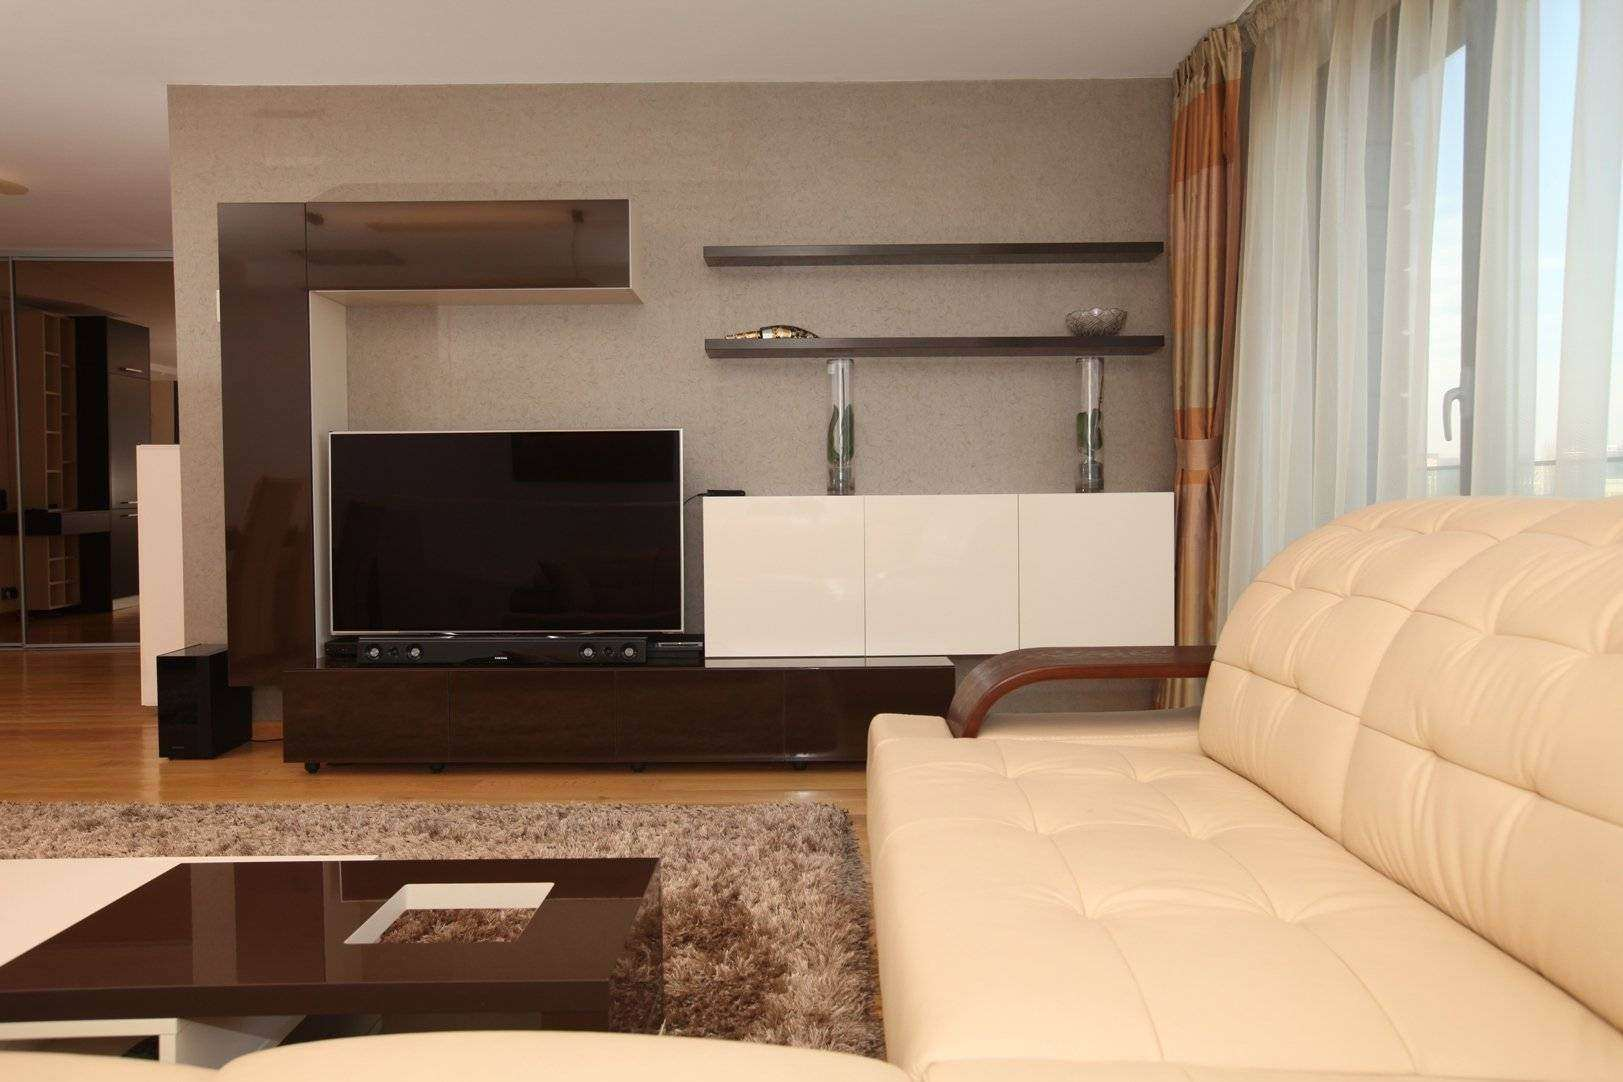 <a href=&quot;mobila living la comanda moderna&quot;>mobila living moderna wenge<img src='https://www.unican.ro/wp-content/themes/vita/img/dreapta.png' class='pull-right hidden-xs' style='margin-right:-10px;margin-top:-10px; max-height:41px'></a>